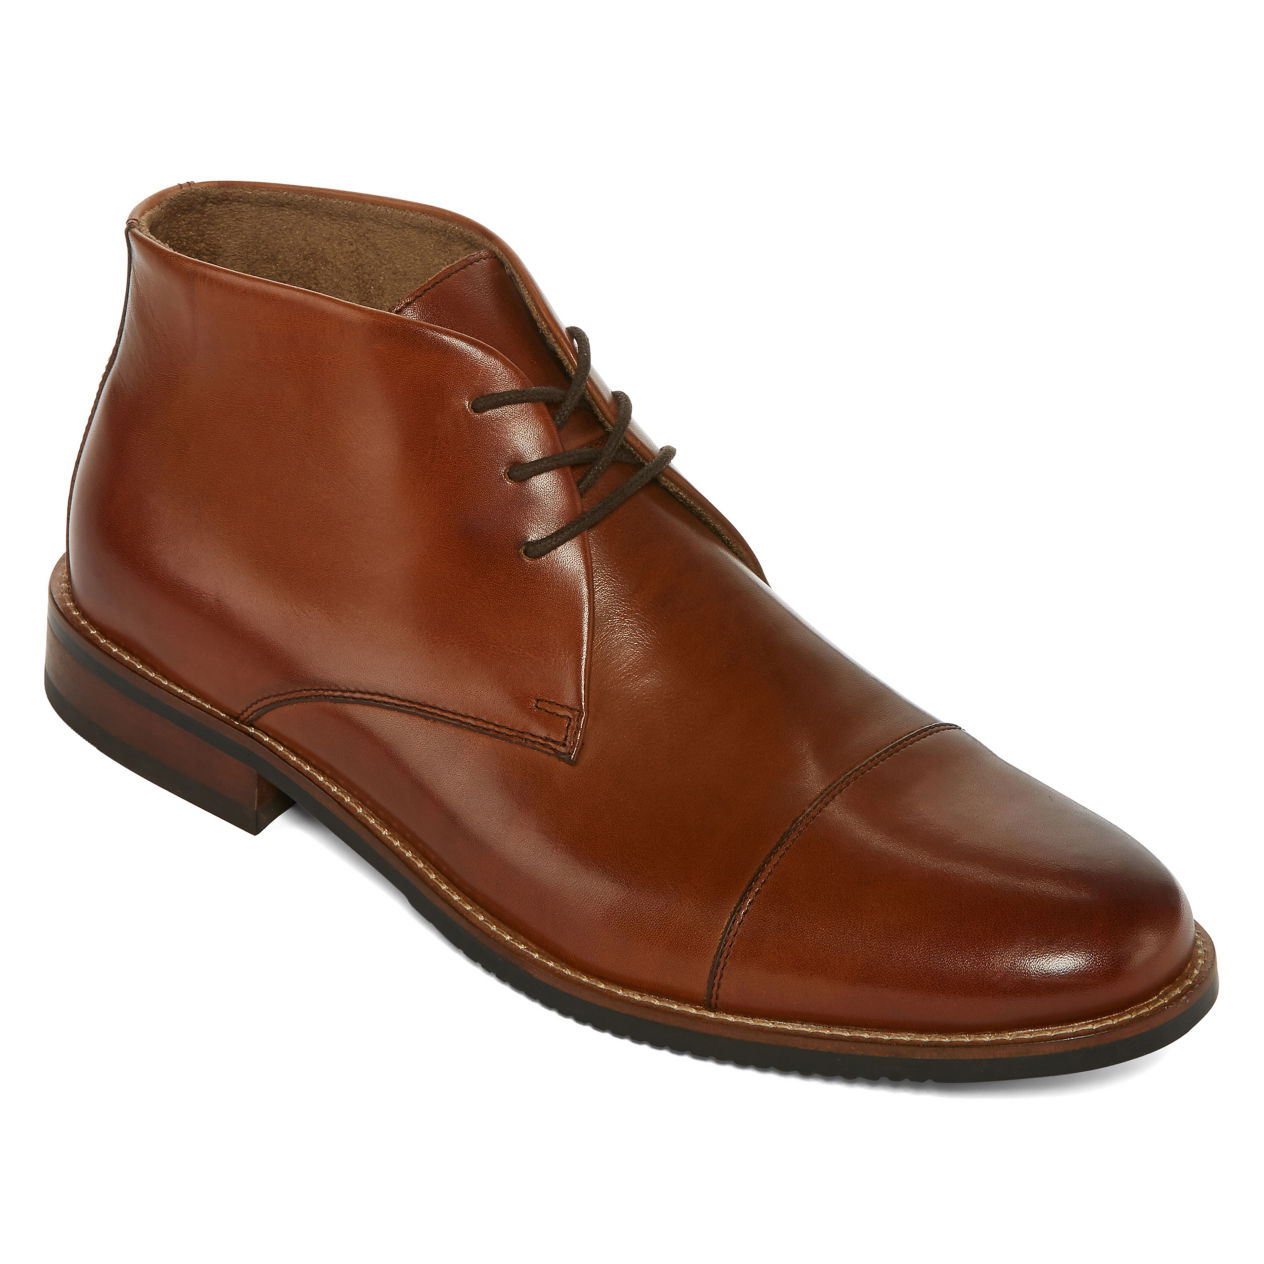 Men's Brown Dress Shoes